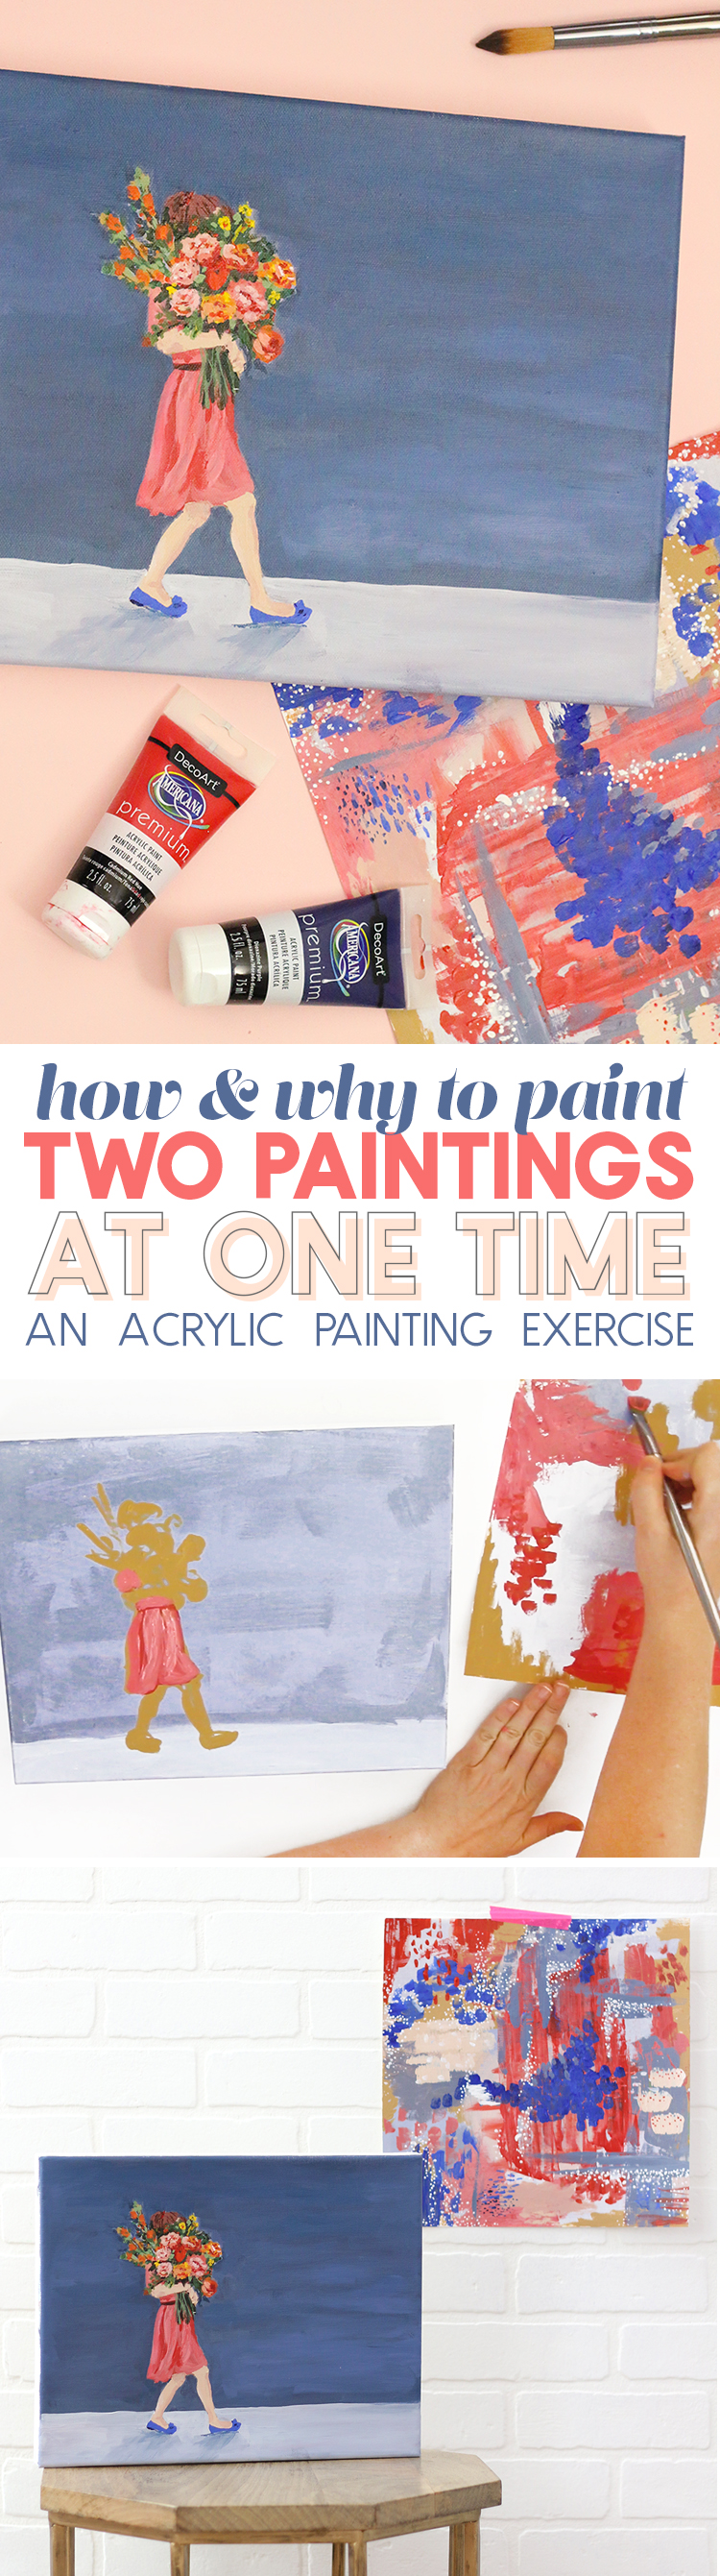 how to paint two paintings at once - diy acrylic painting technique